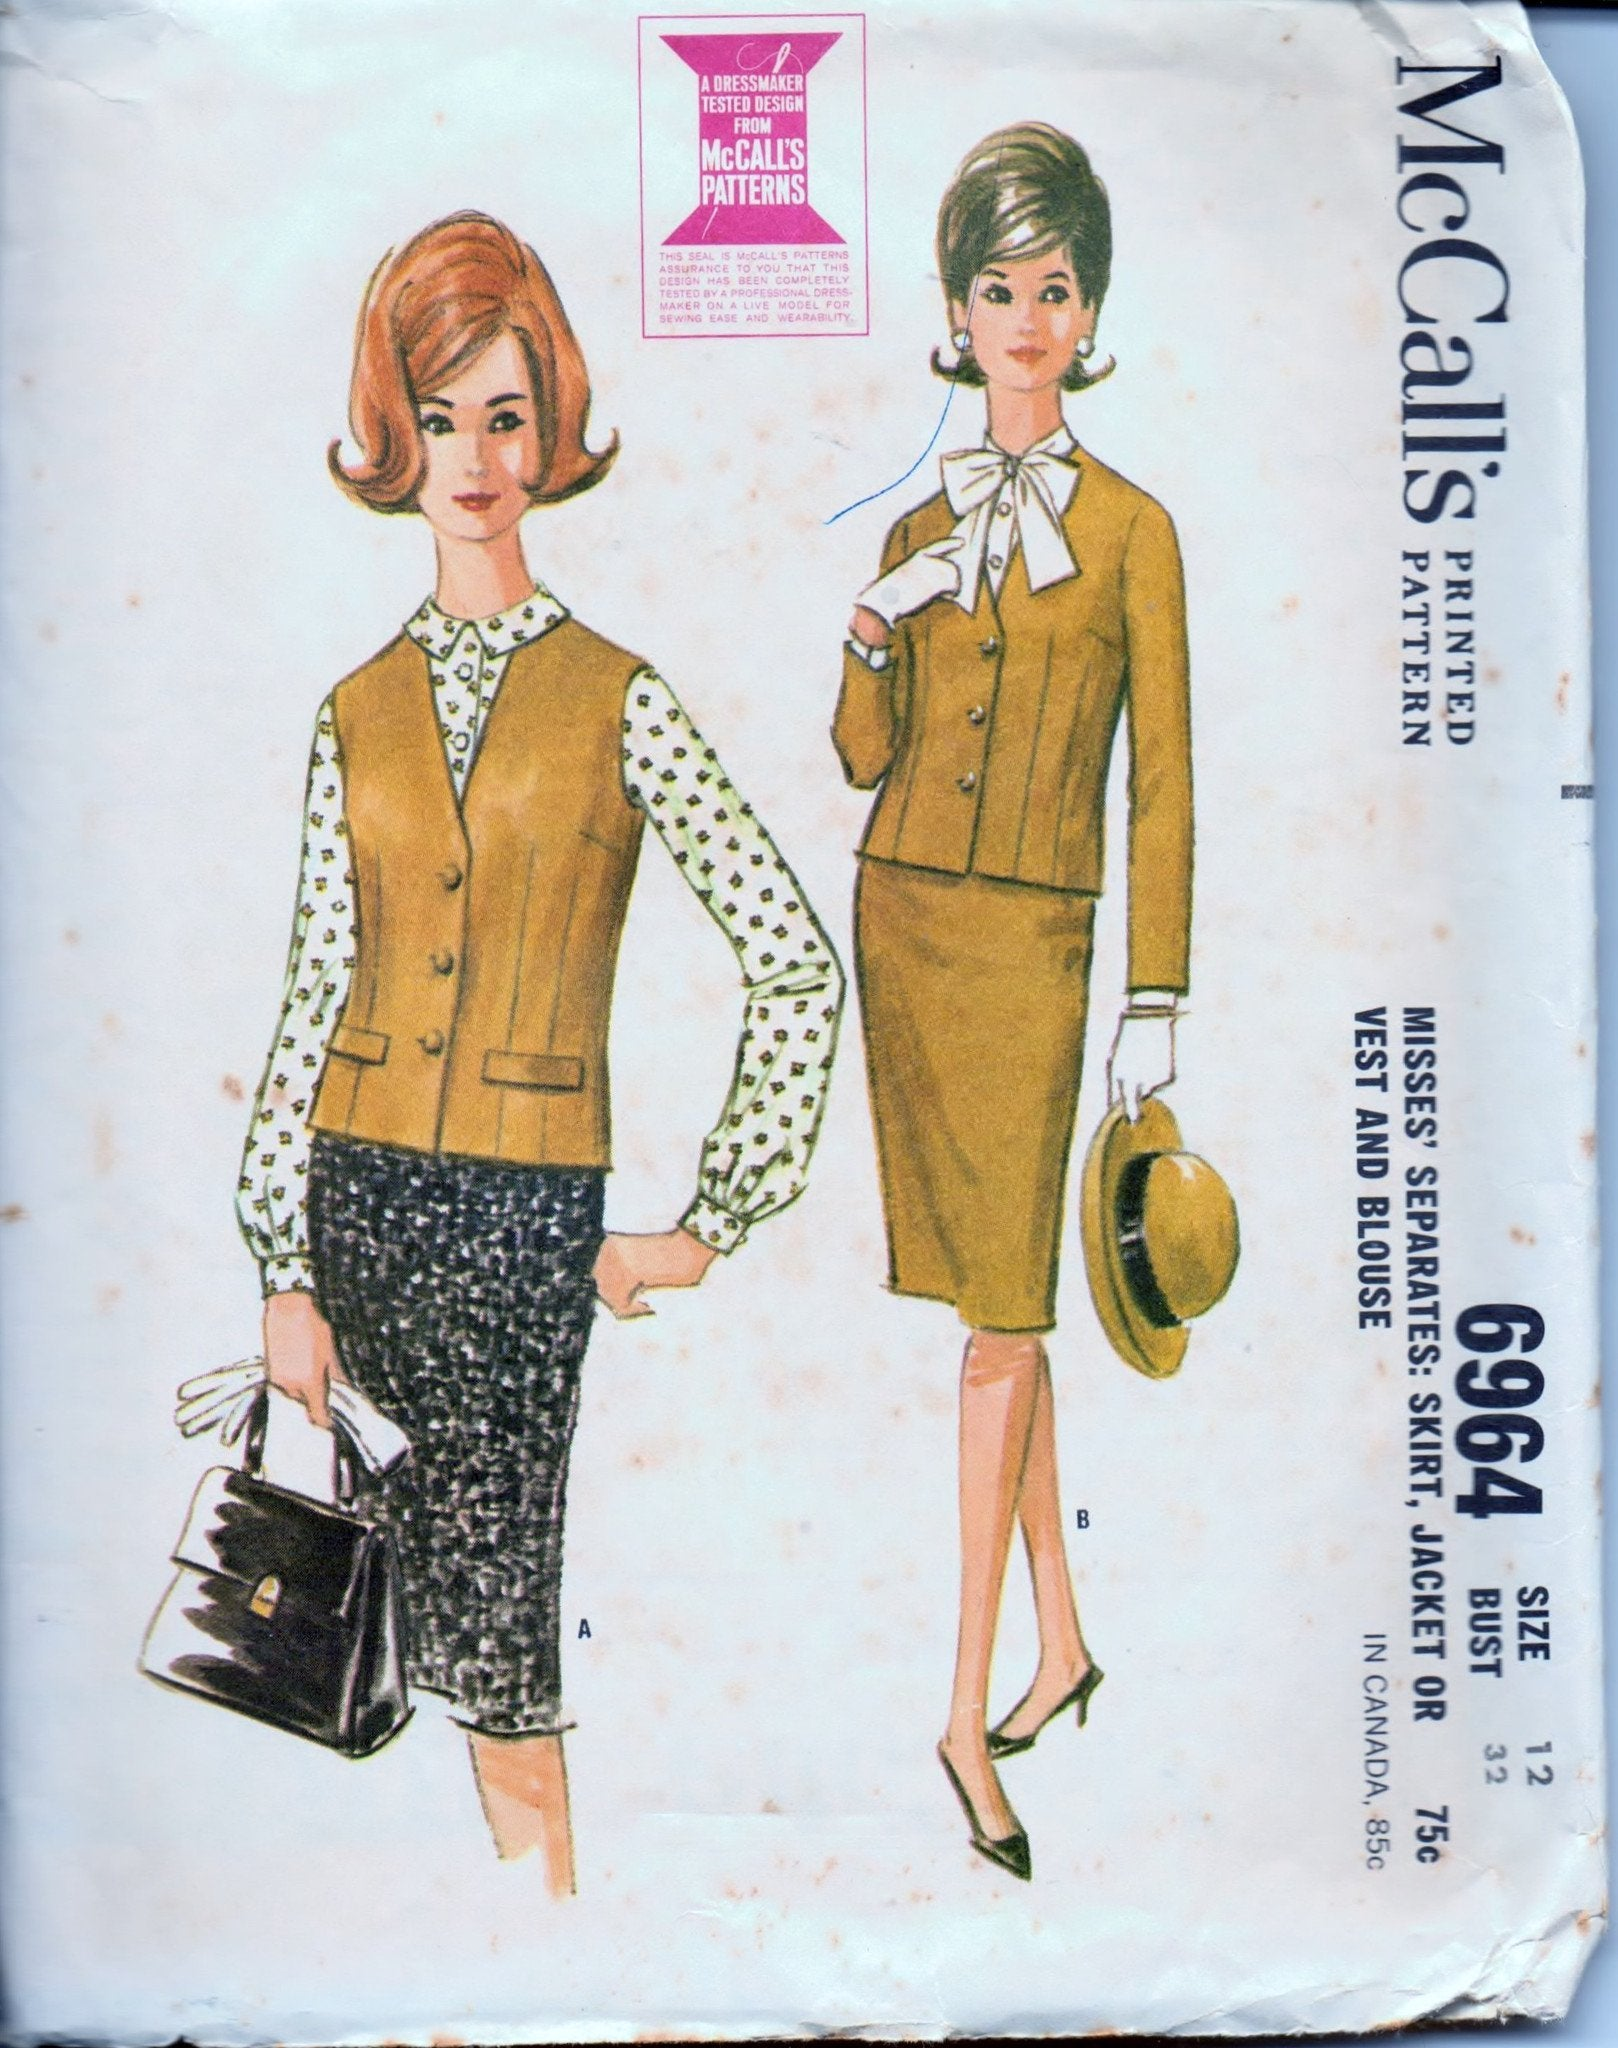 McCall's 6964 Ladies Separates Skirt Jacket Vest Blouse Vintage 1960's Sewing Pattern - VintageStitching - Vintage Sewing Patterns